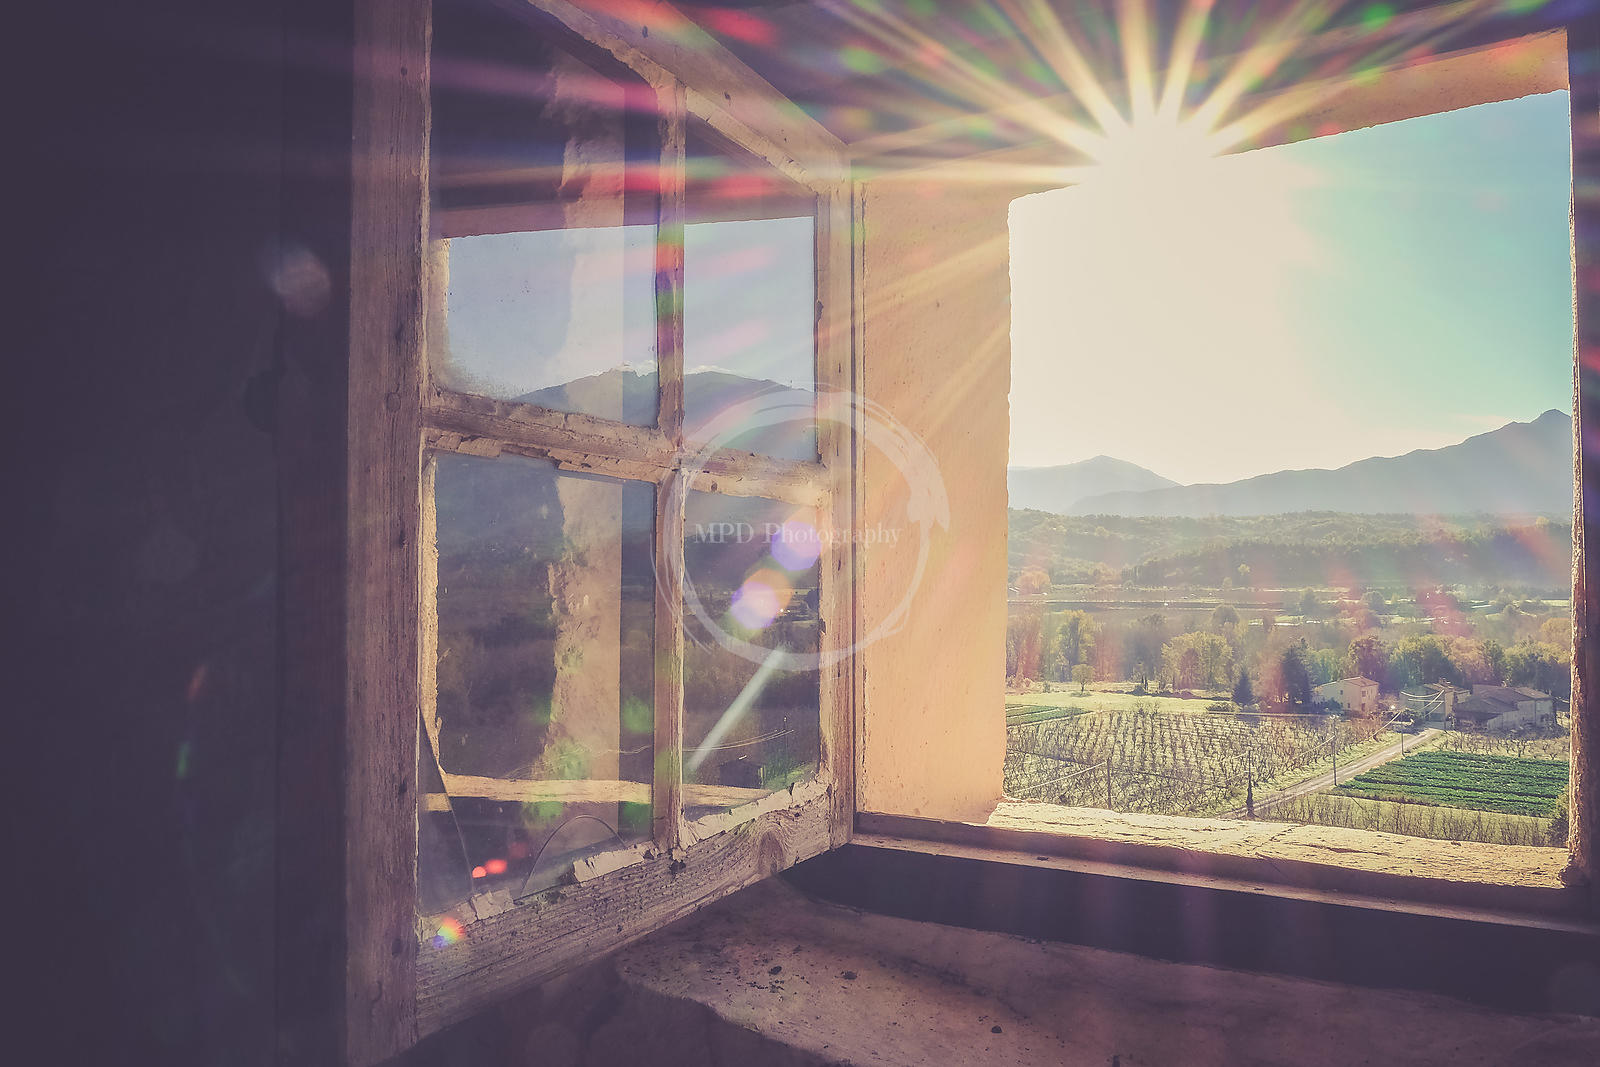 Window onto Canigou